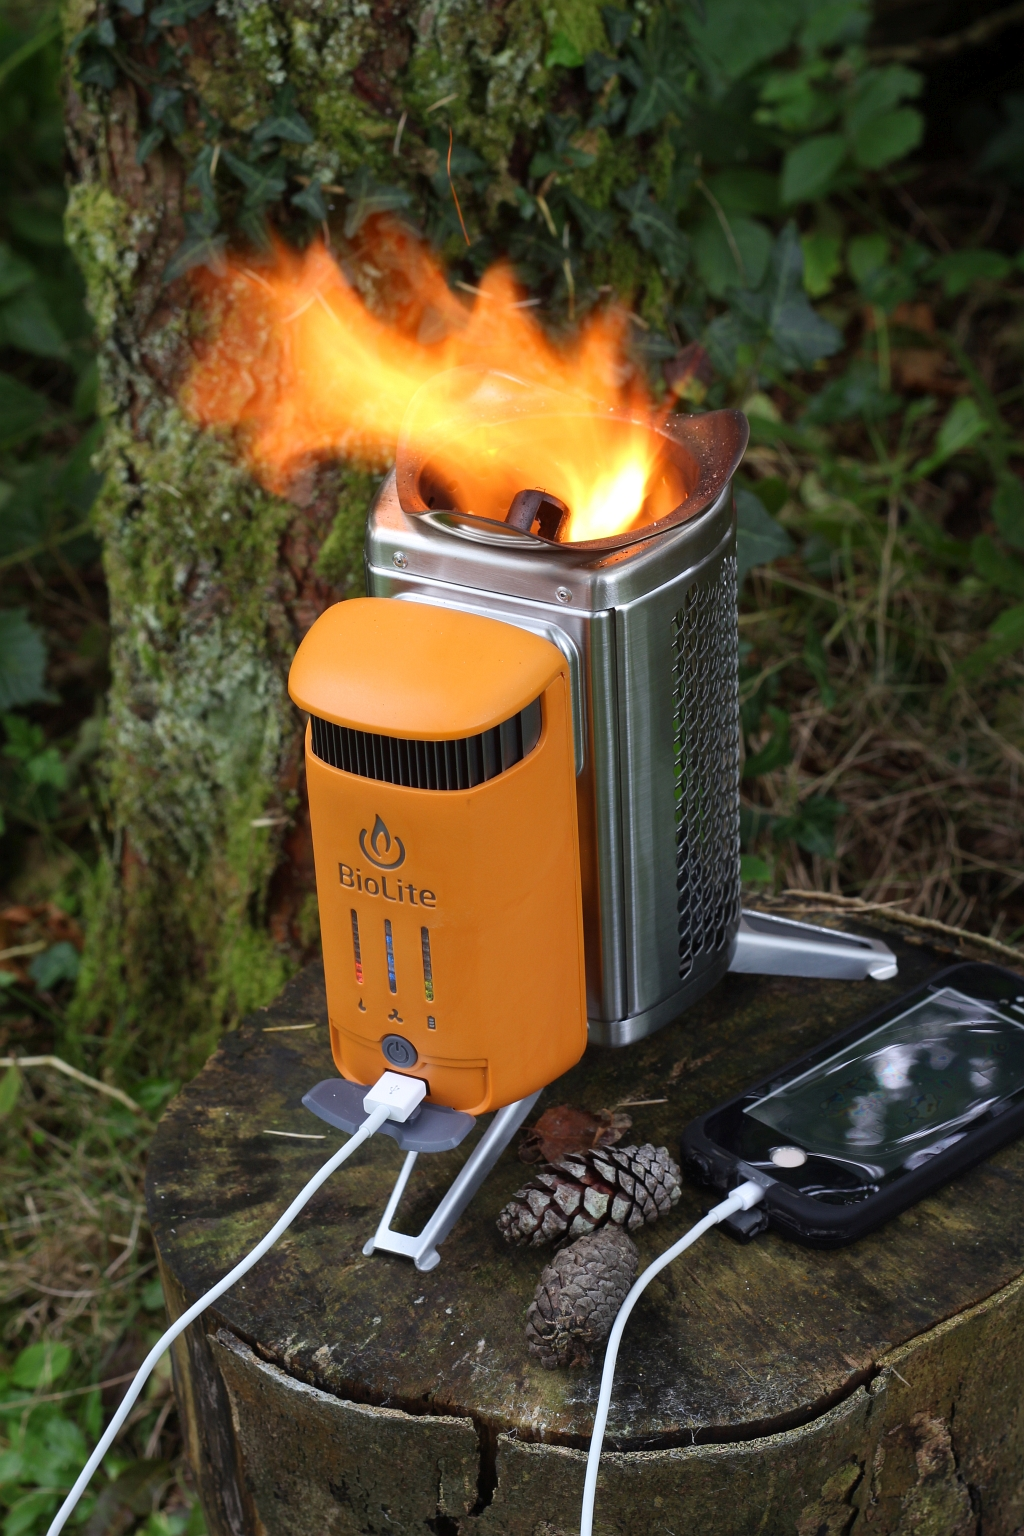 BioLite Campstove 2 Flame Fire Charge USB